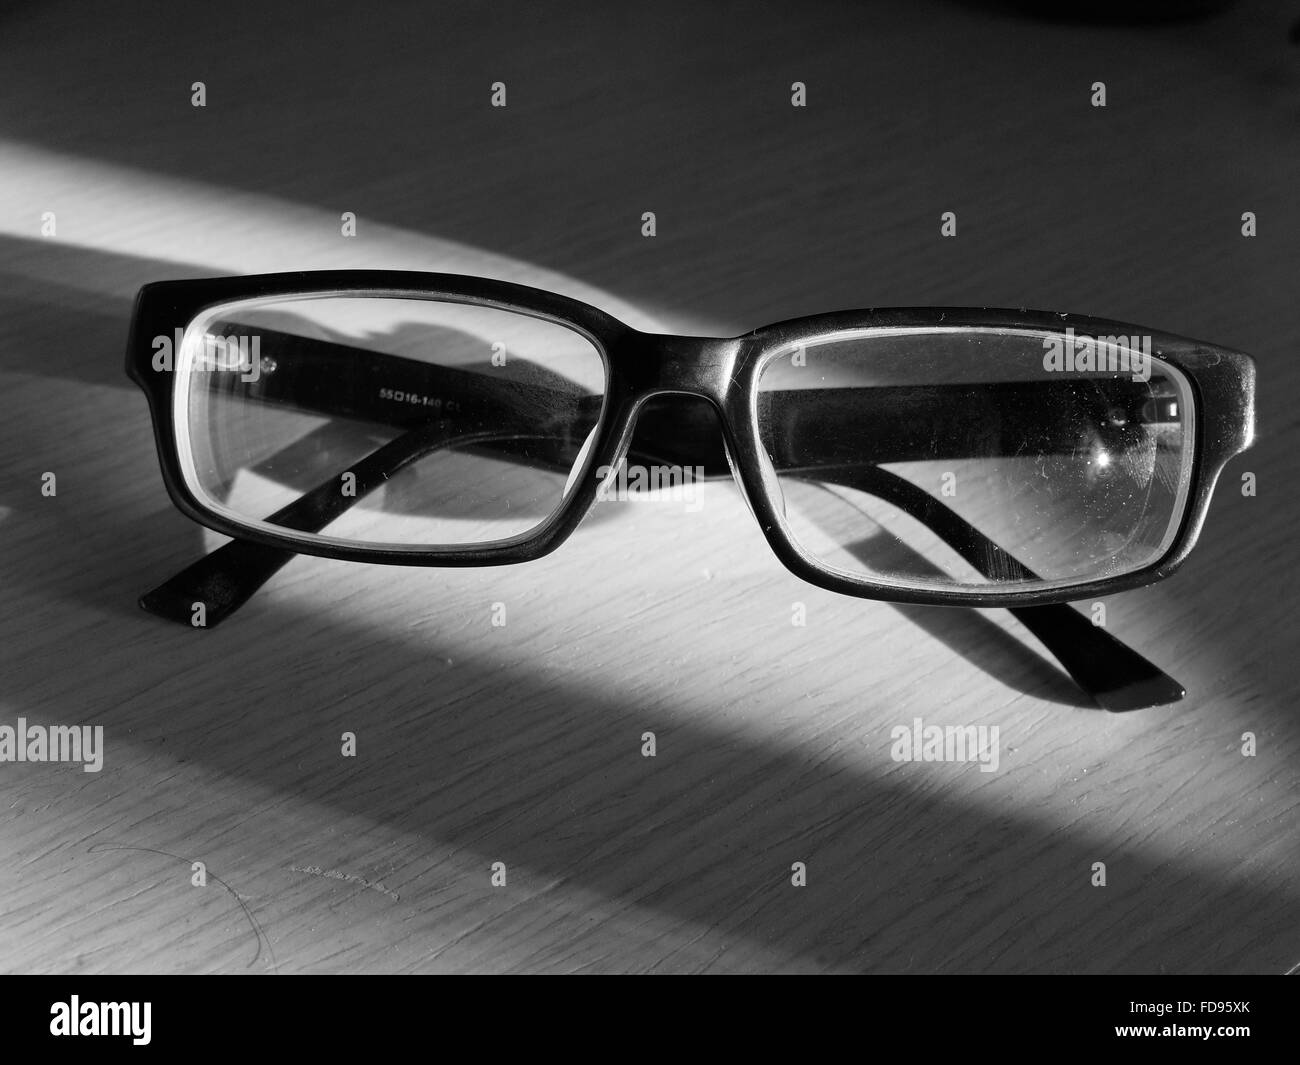 Close-Up Of Eyeglasses On Table - Stock Image